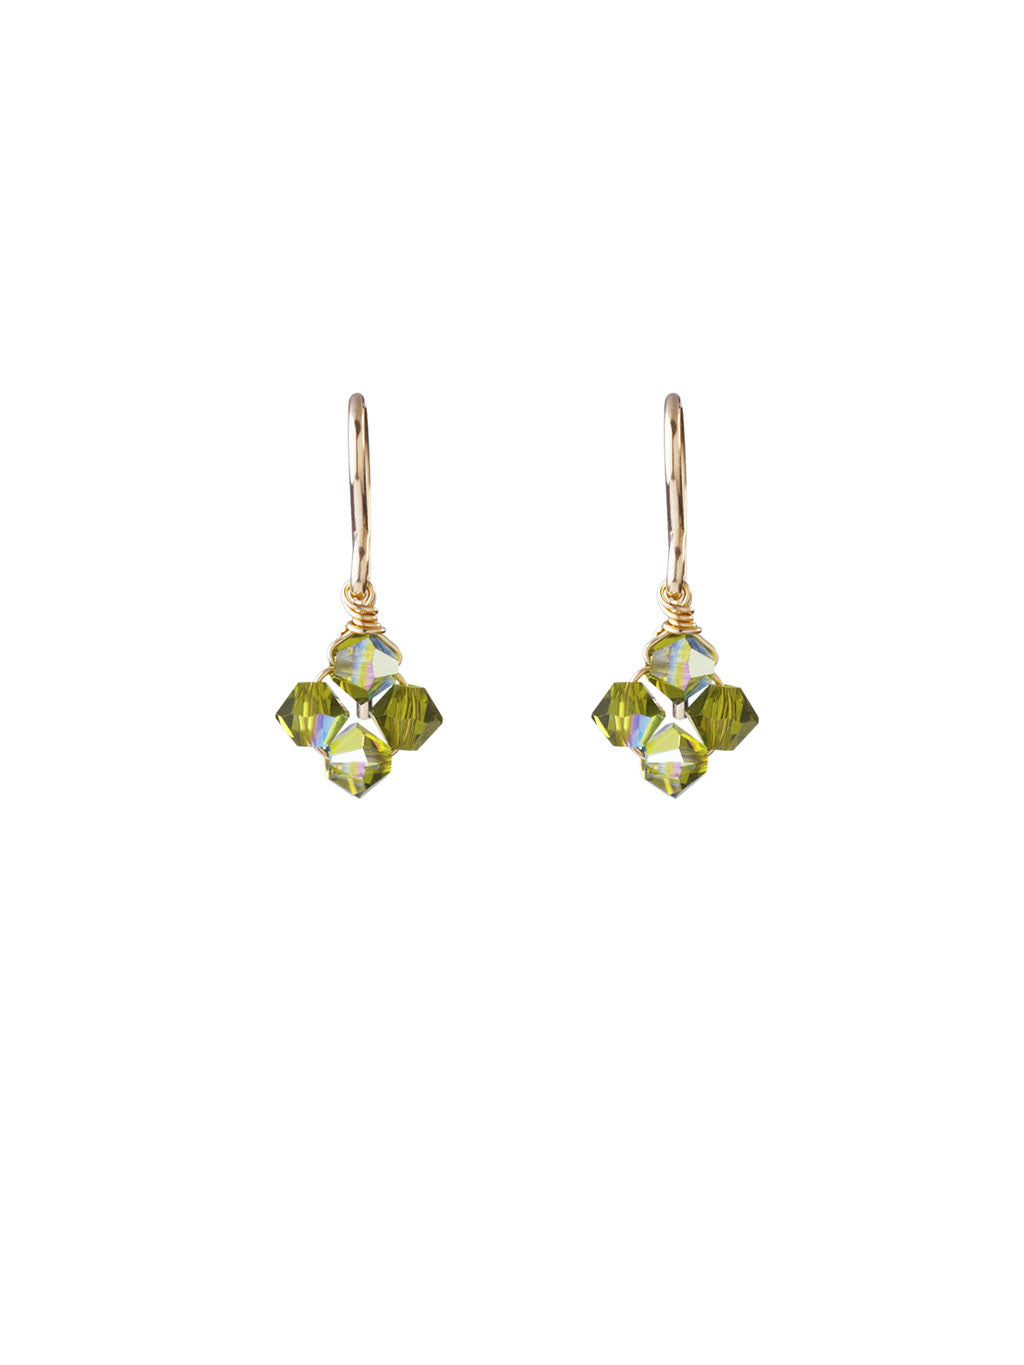 Crystal Diamond Clover Earrings - Olivine